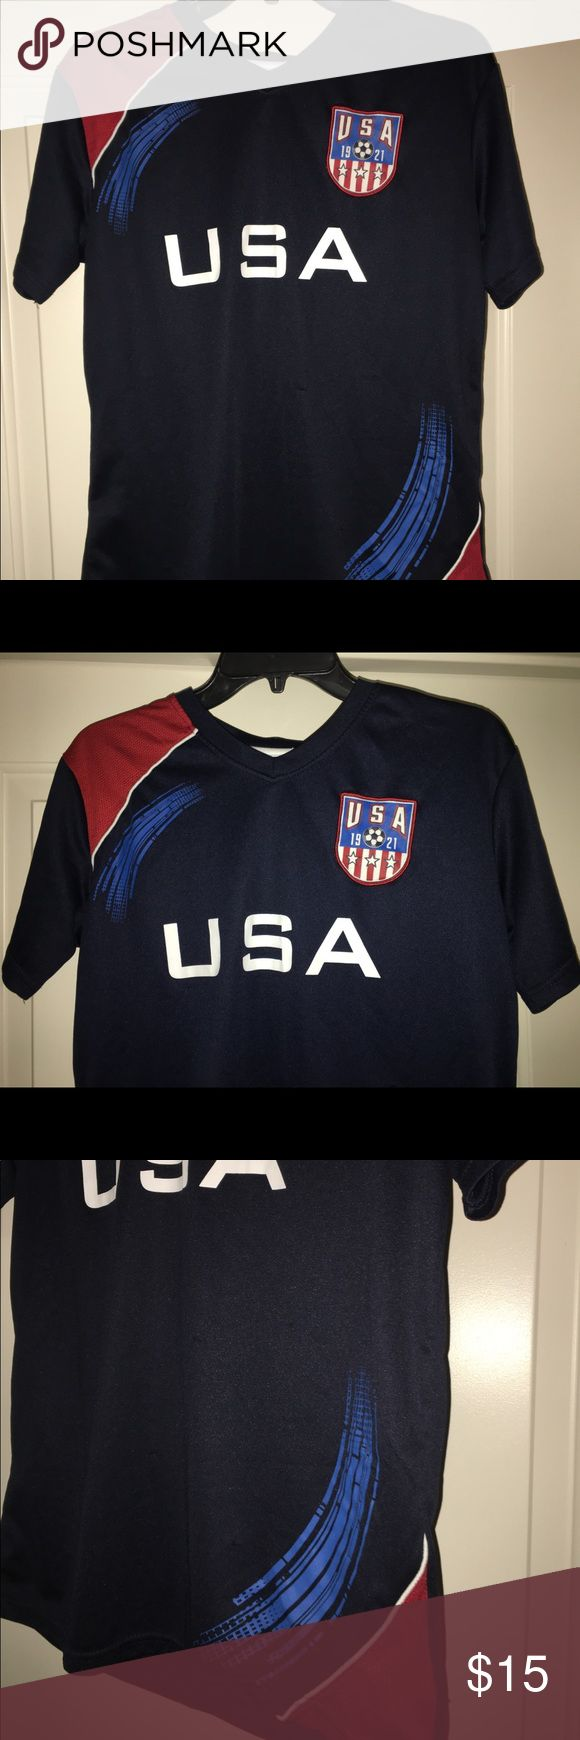 """Boys USA soccer jersey size XL Thank you for viewing my listing, for sale is a youth/boys, navy blue, USA soccer, short sleeve jersey.   #4  Sz: Youth XL 18/20   Jersey is in great condition with no rips or stains. If you have any questions or would like additional photos please feel free to ask.   From under one arm to under the other measures appx 18"""" from the top of the shoulder to the bottom of the Jersey measures appx 25"""" simply sports Shirts & Tops Tees - Short Sleeve"""